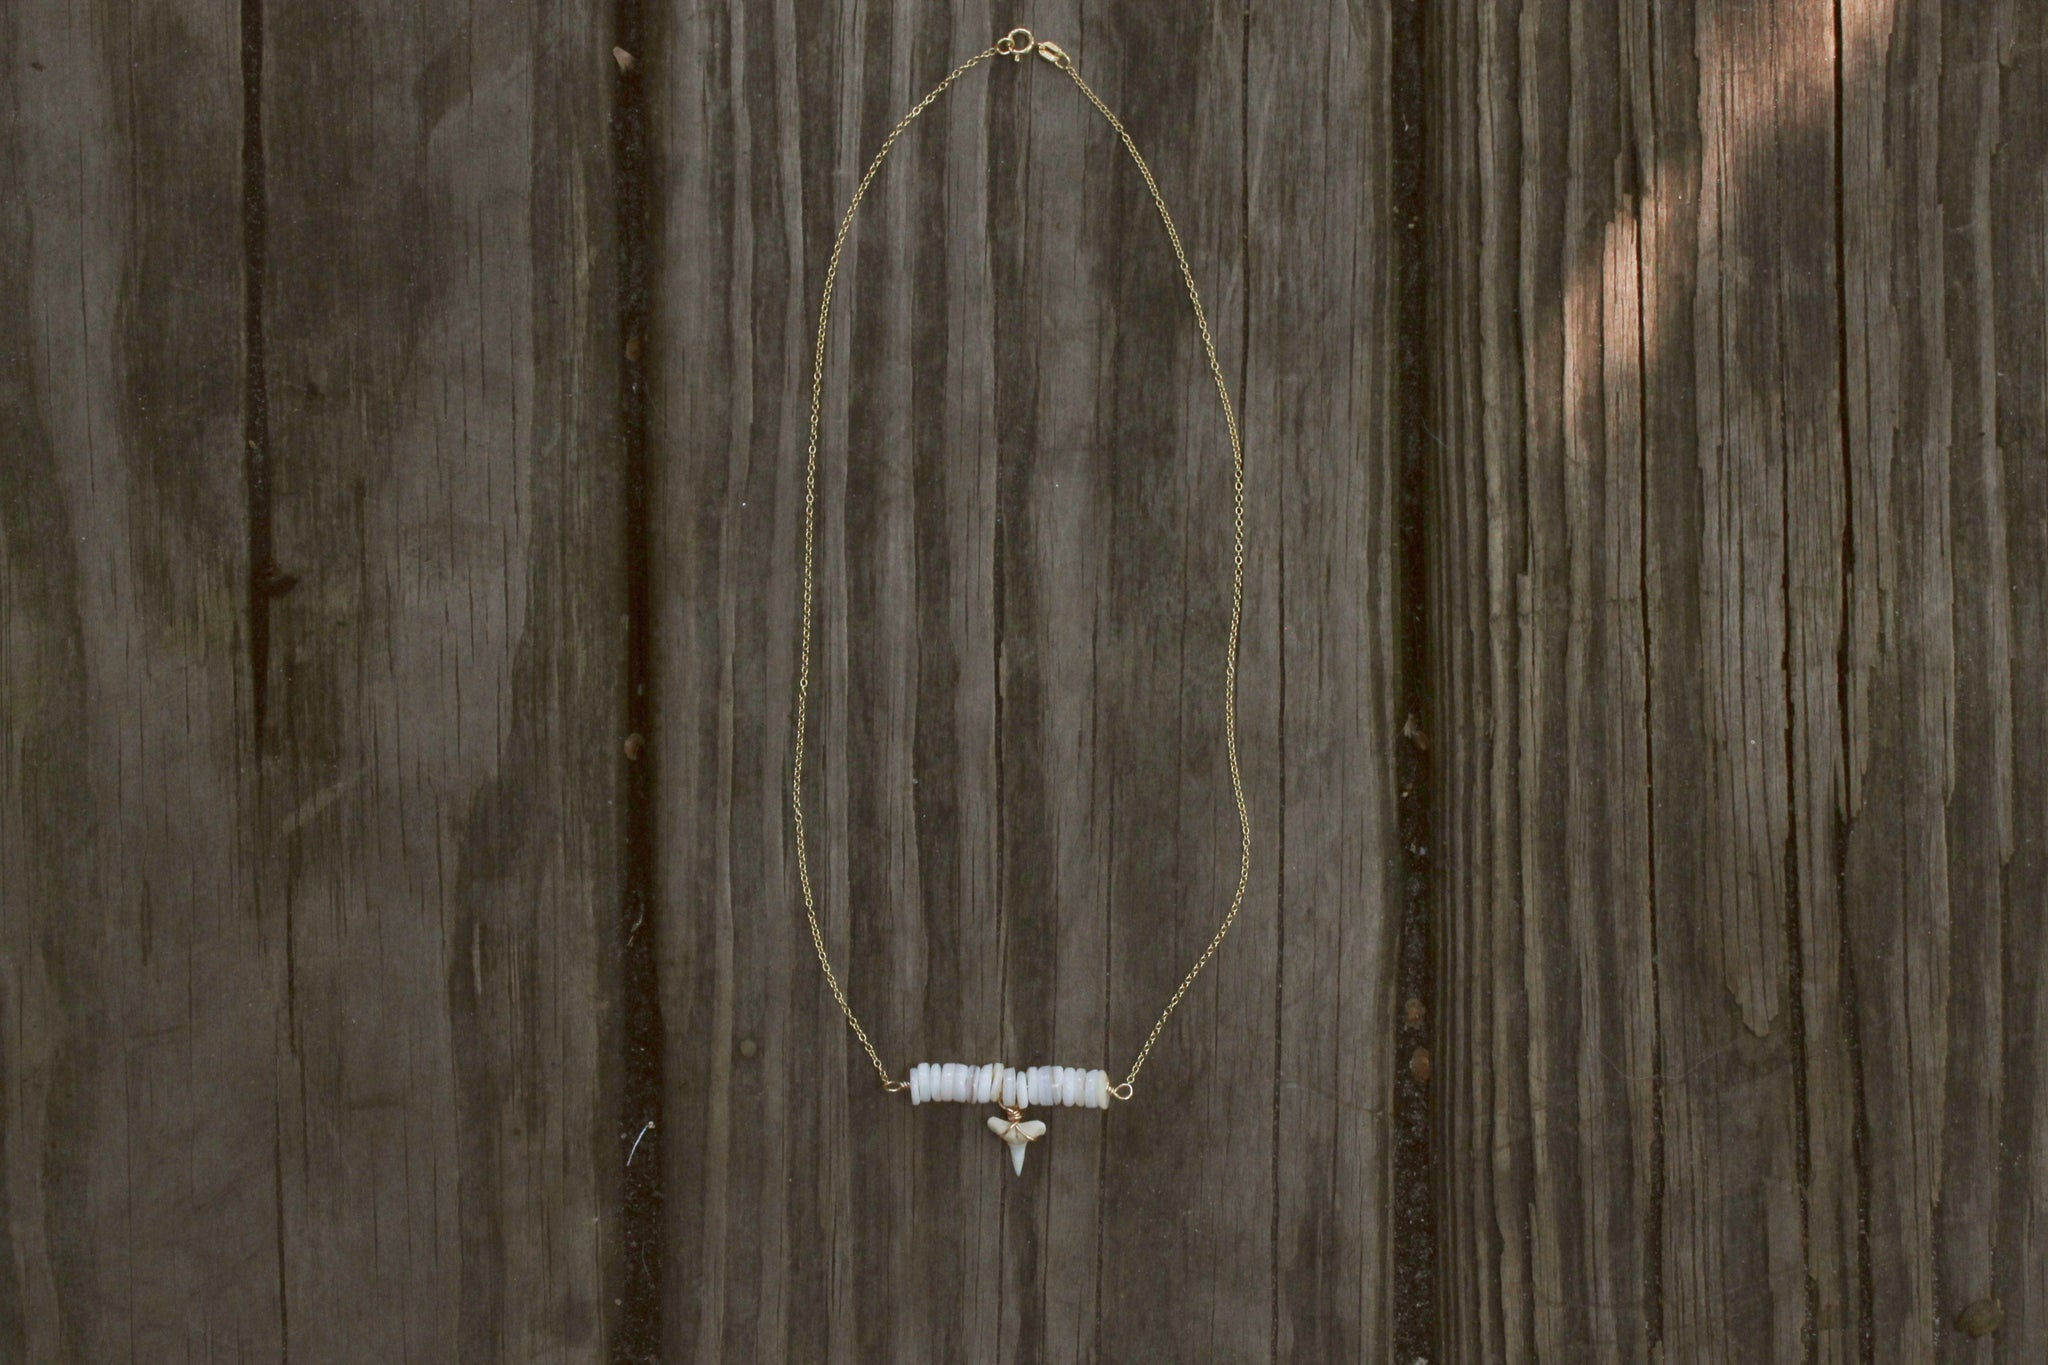 Black Tip Bar Necklace